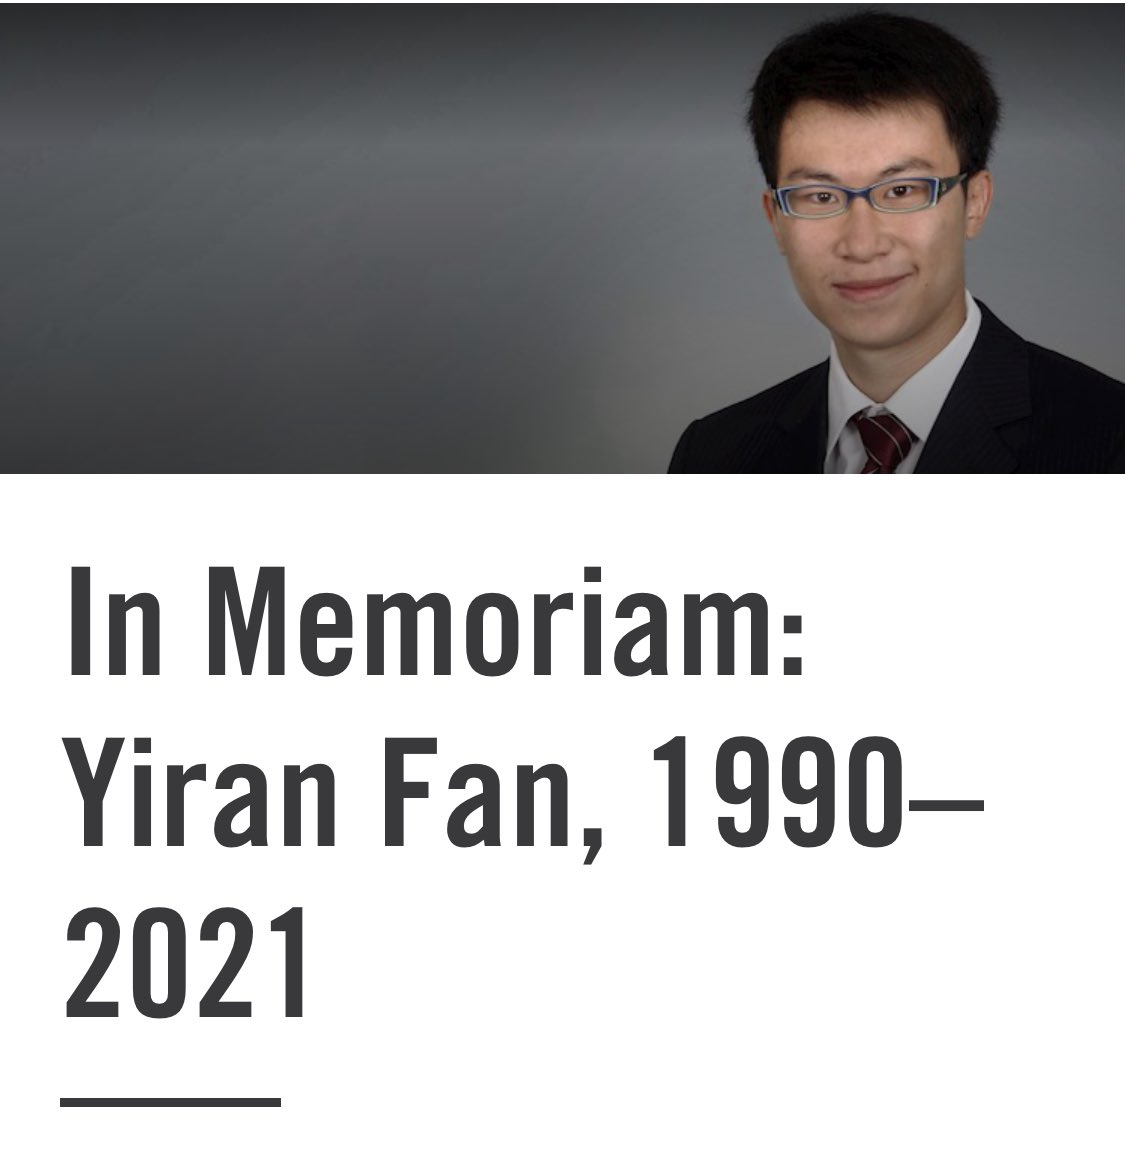 My thoughts go out to Yiran's family, he was senselessly killed in Chicago, the #NRABankruptcy gives me hope that maybe we can do something about #GunControl in #America   How will our universities continue to attract the best talent in the world if we can't keep them safe?